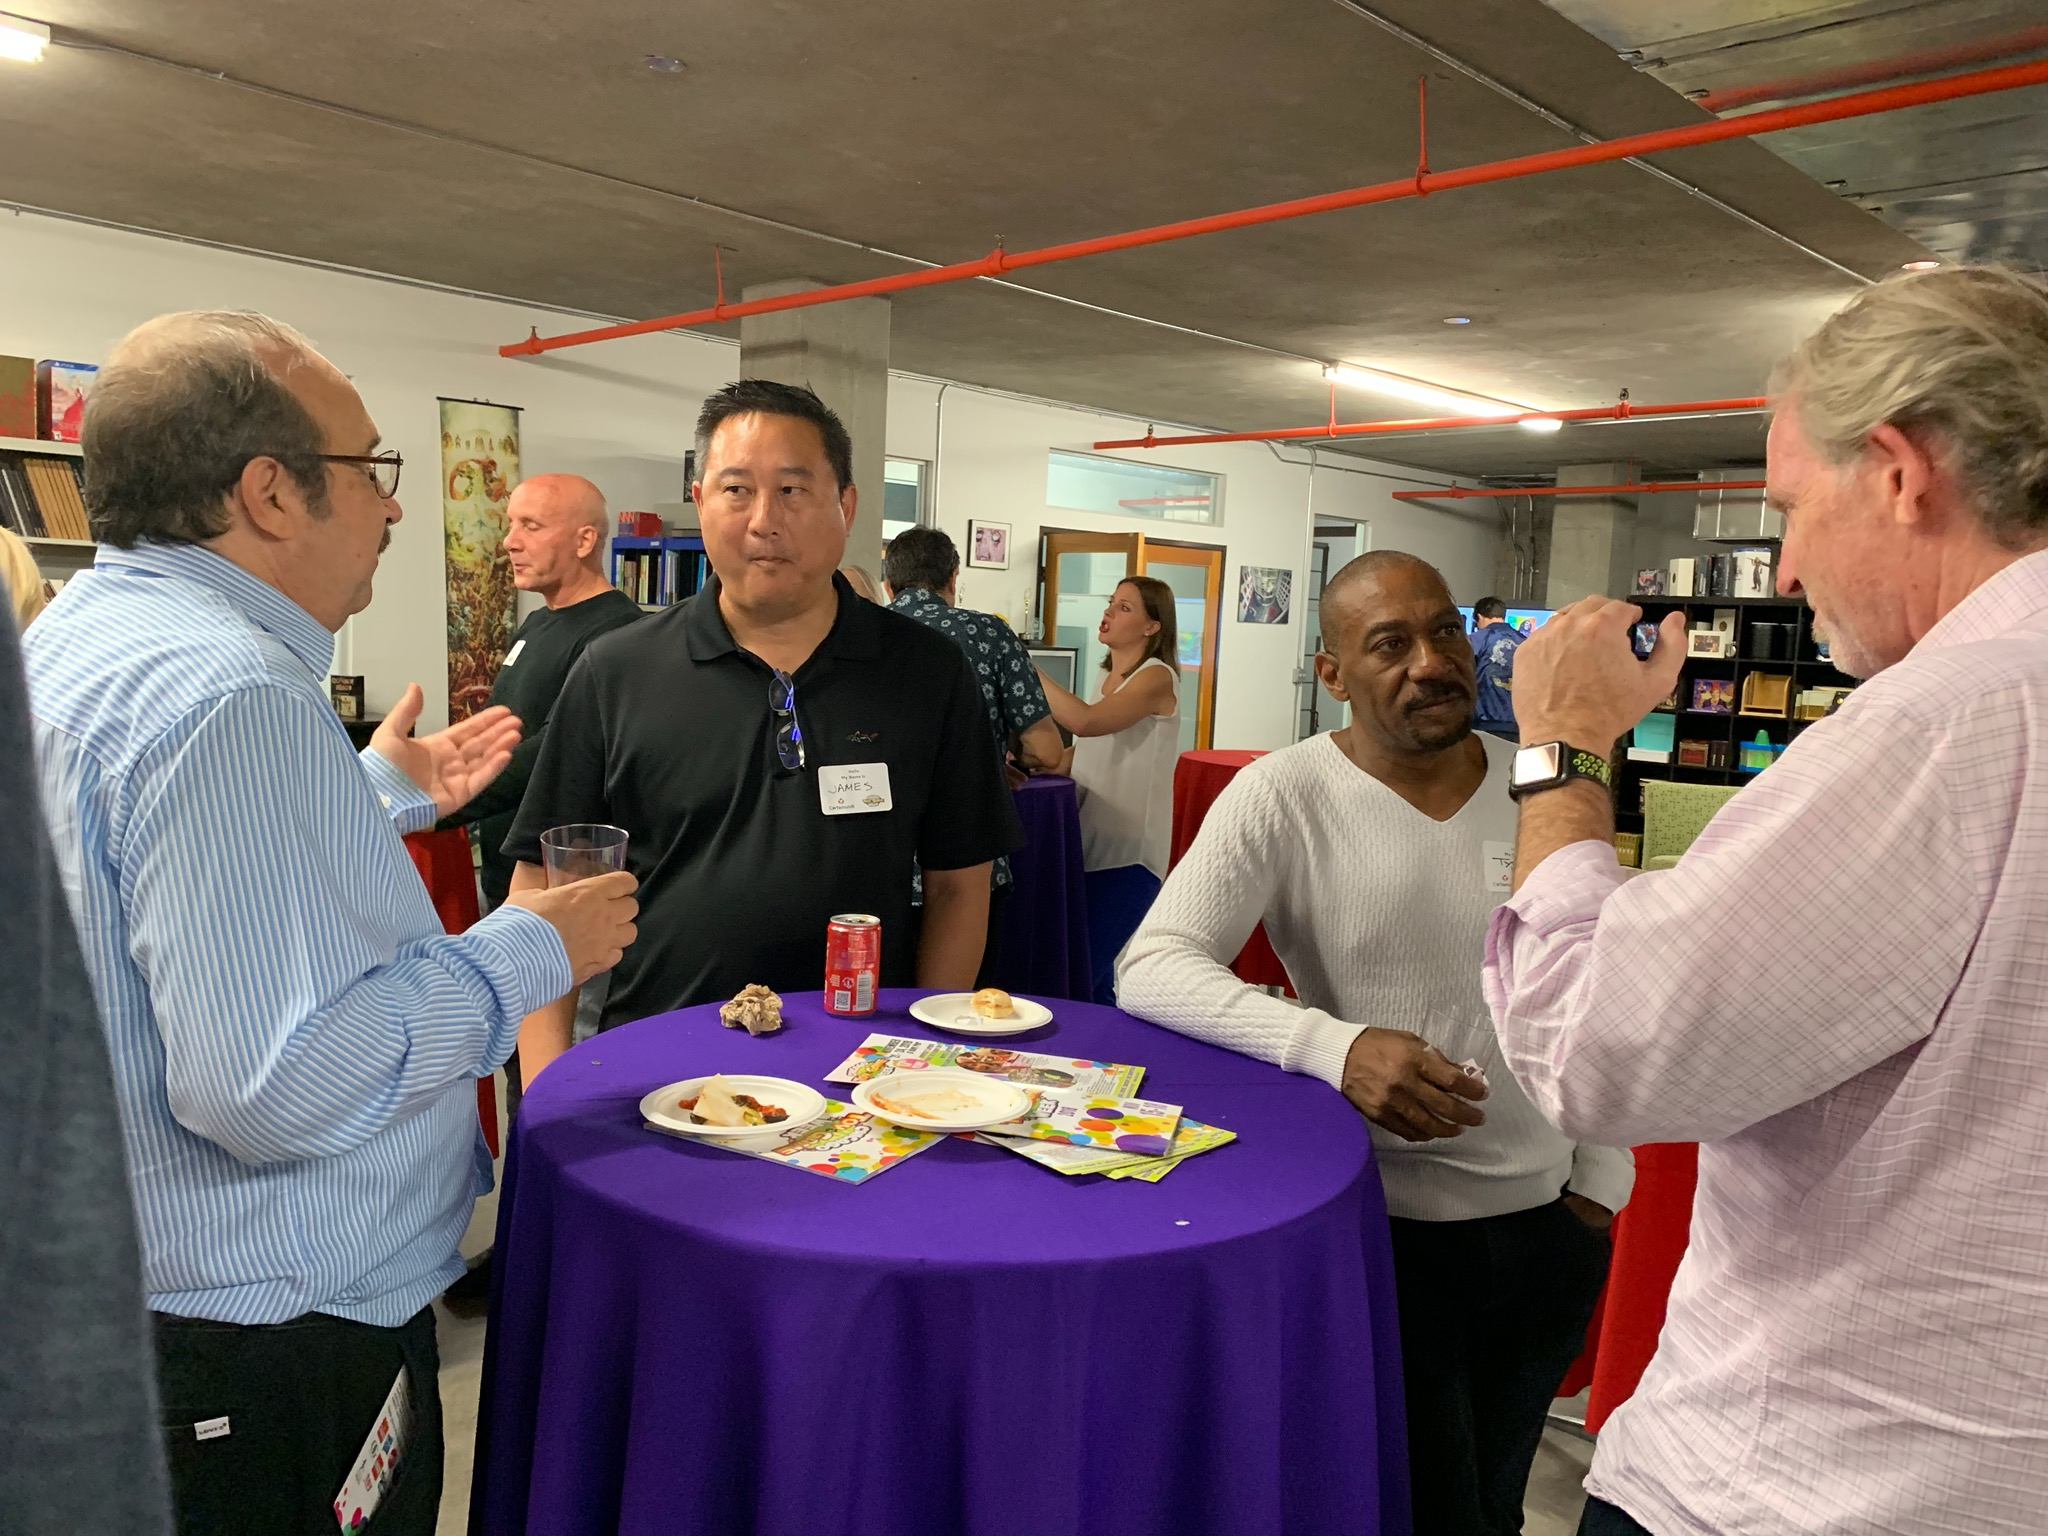 LA Sept 2019 event Paul Fish and others.